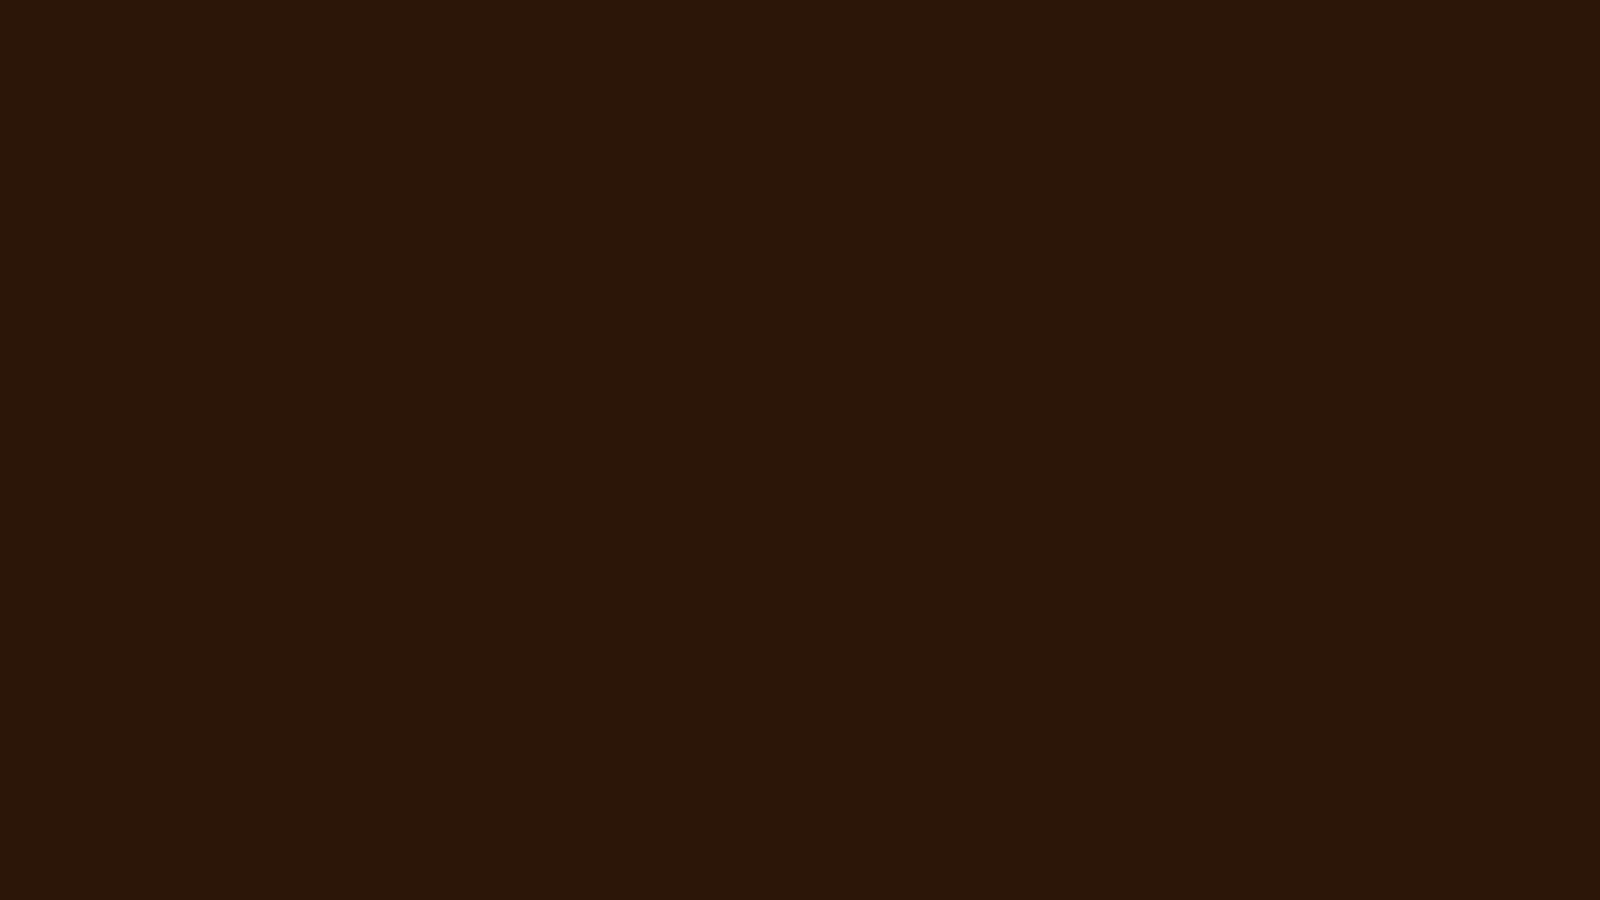 Privacy Policy >> 1600x900 Zinnwaldite Brown Solid Color Background